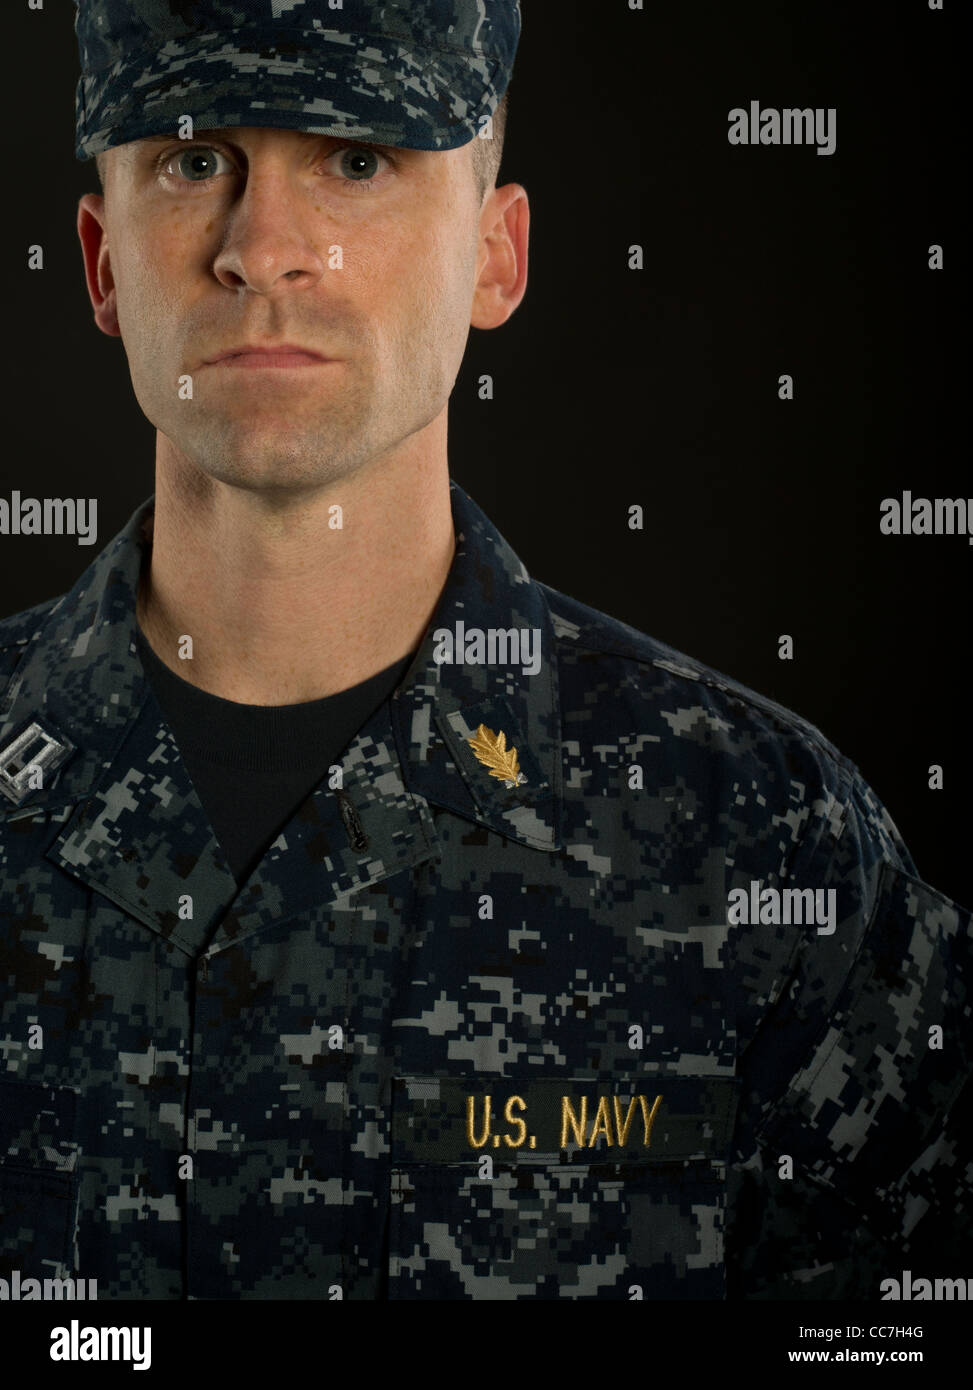 United States Navy Officer in Navy Working Uniform - Stock Image